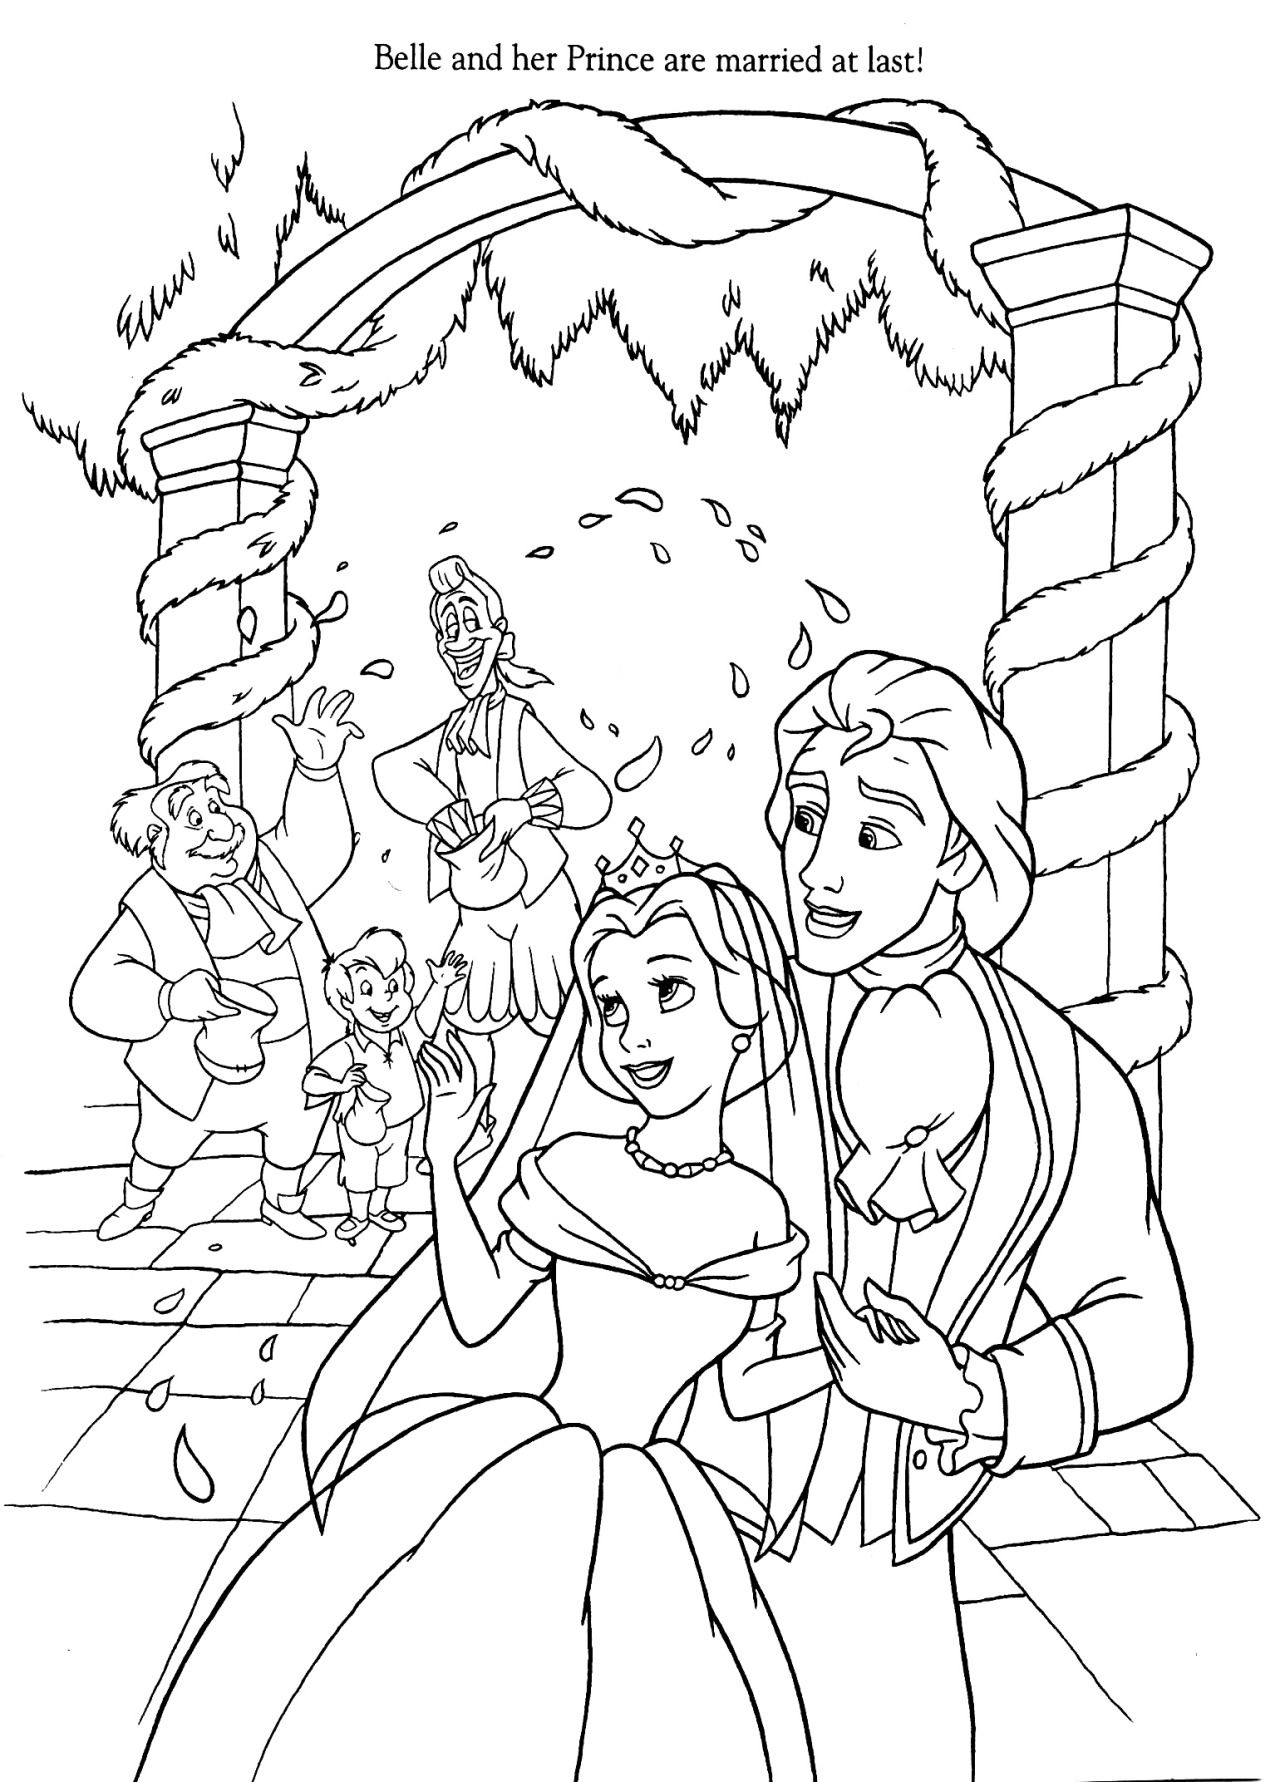 wedding day disney wedding coloring pages currently on hiatus not sure when coming back sorry pages disney coloring day wedding wedding